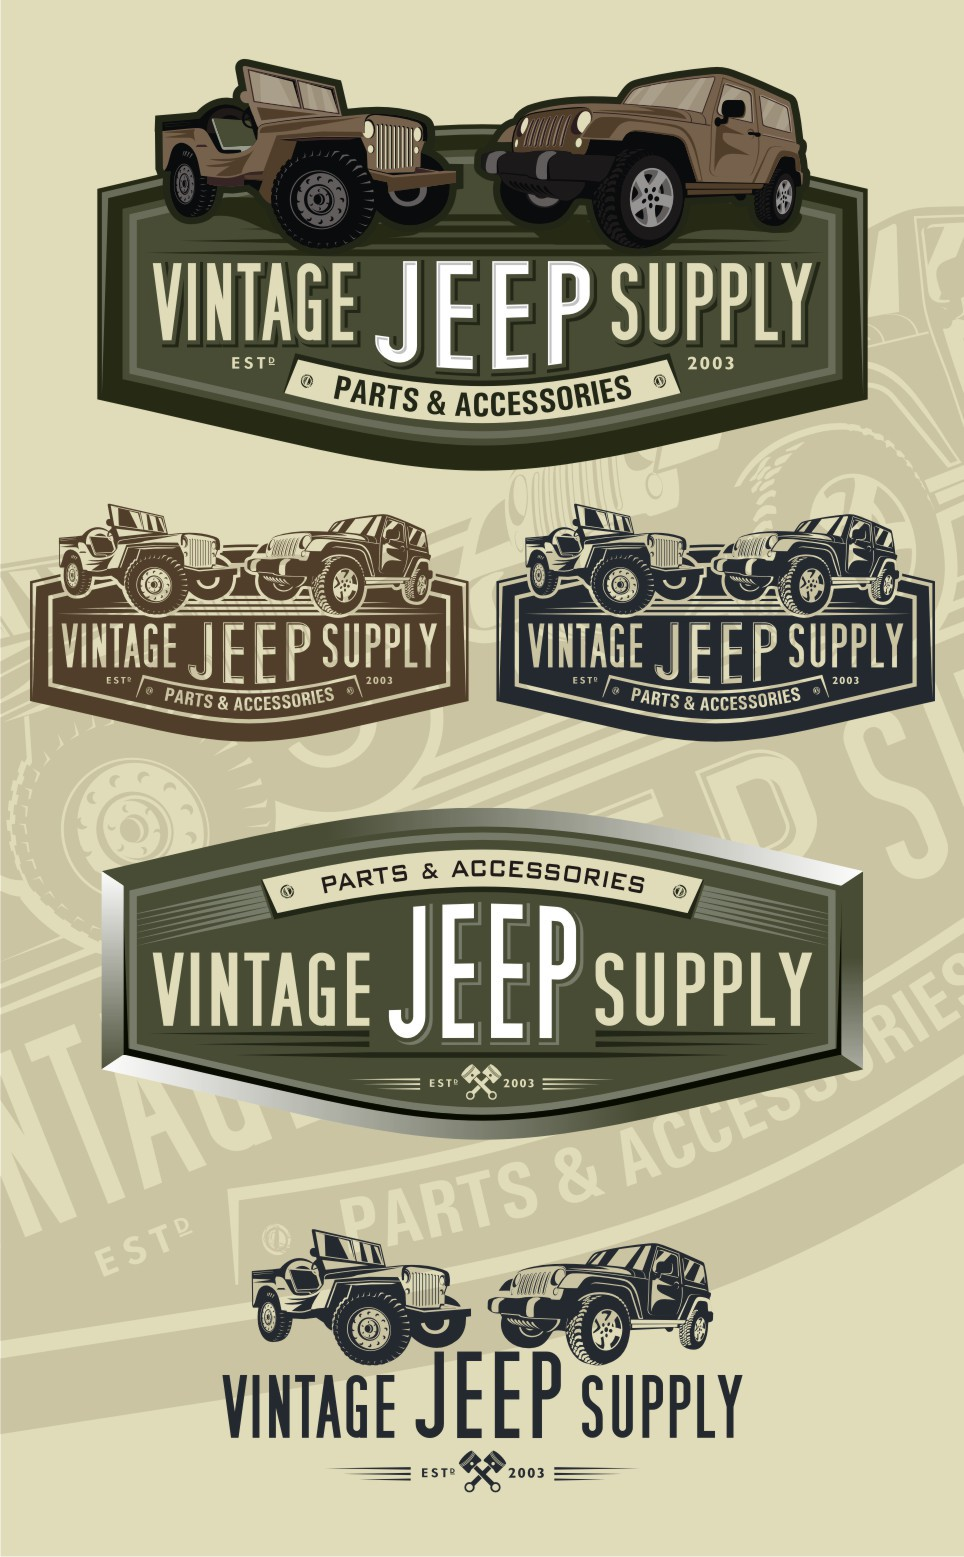 Vintage Jeep Supply needs a new logo